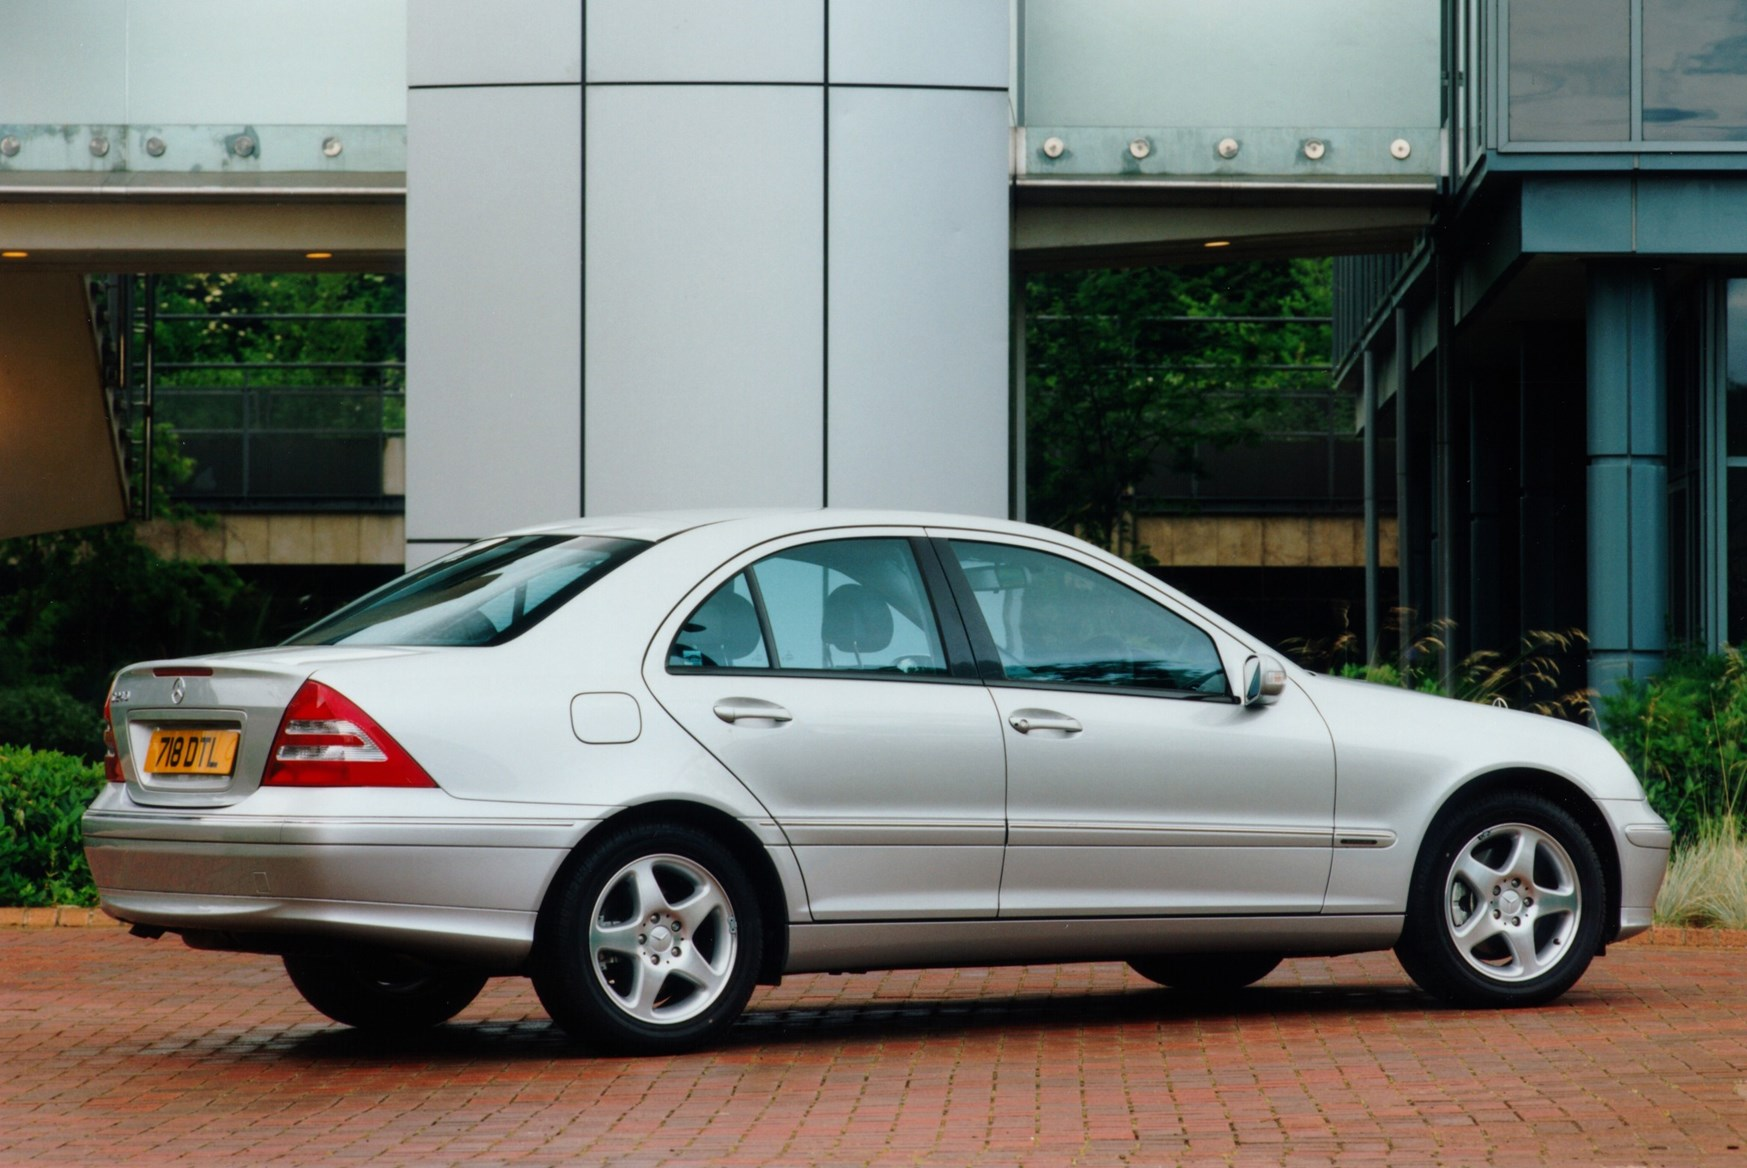 Used Mercedes-Benz C-Class Saloon (2000 - 2007) Engines